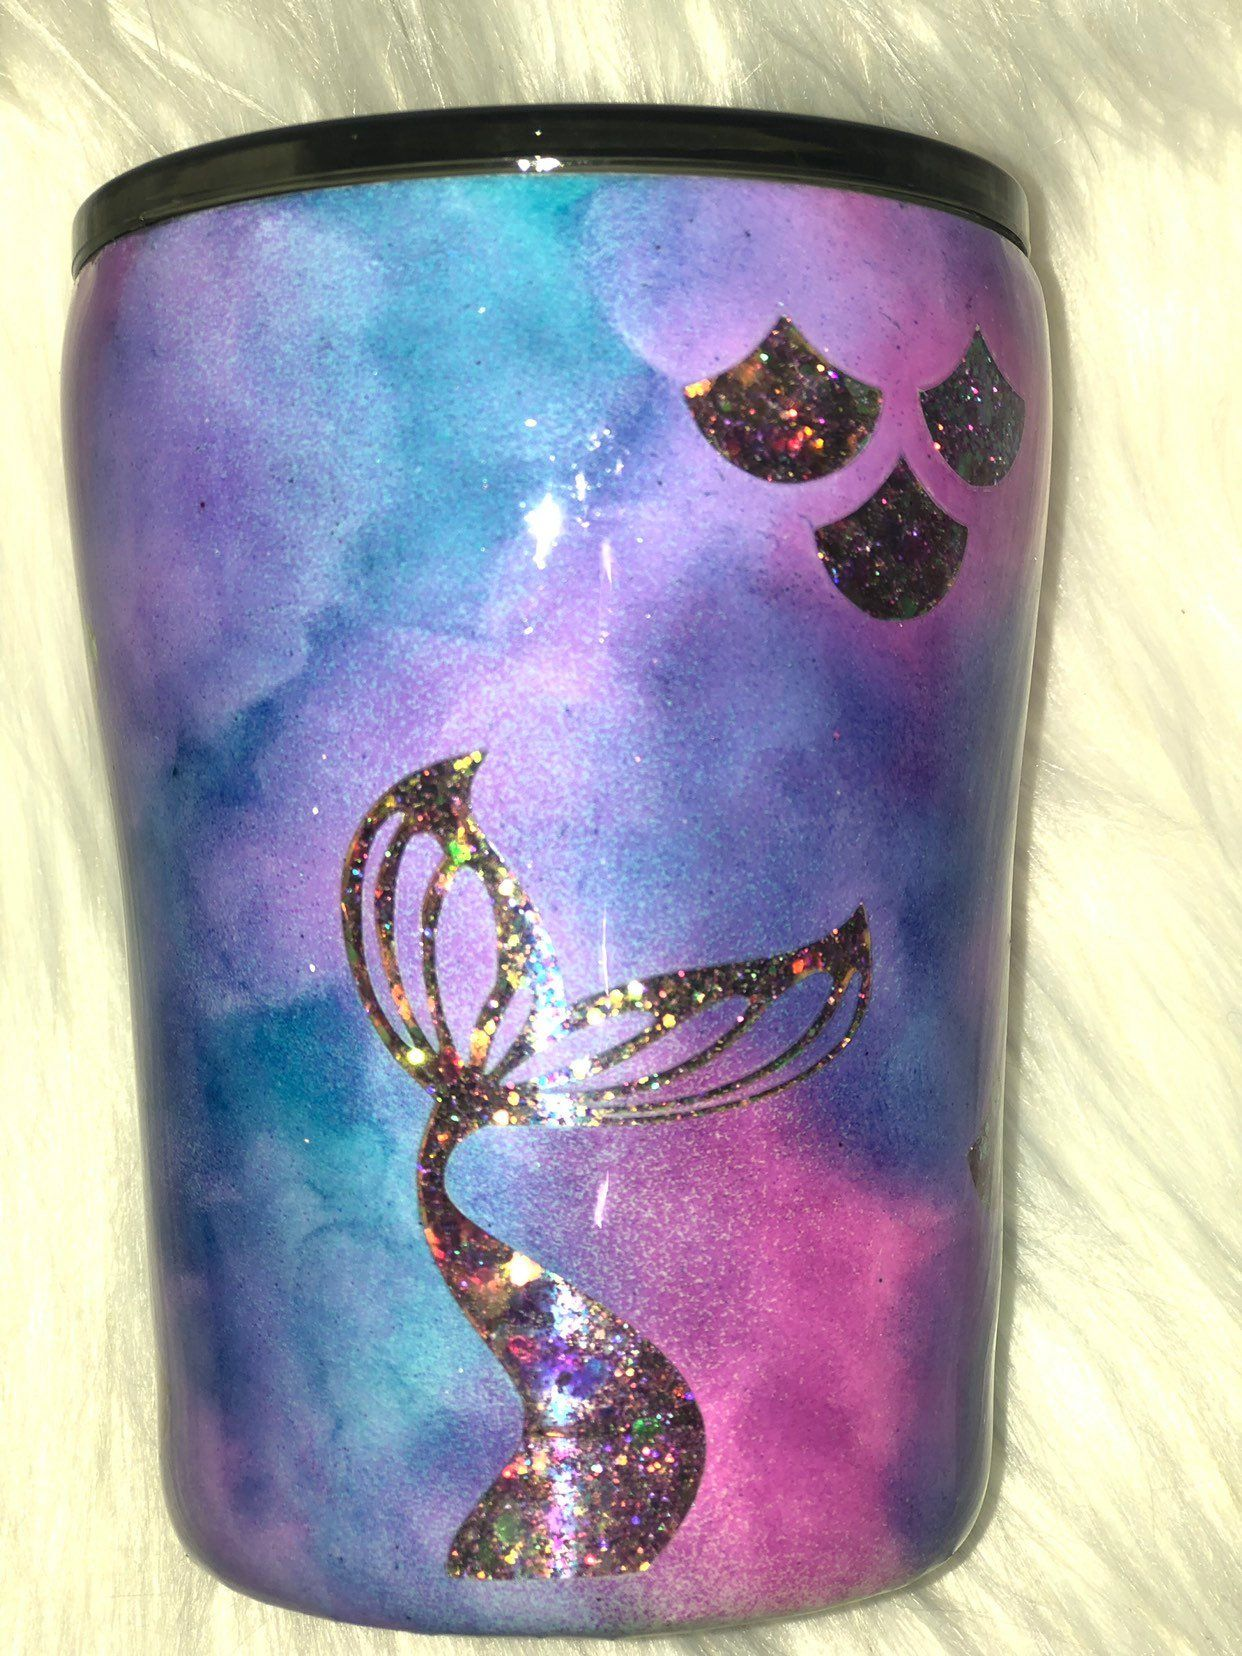 10 Oz Mermaid Peek A Boo Stainless Steel Tumbler Glitter Tumbler Makes A Great Gift Glitter Tumbler Stainless Steel Tumblers Tumbler